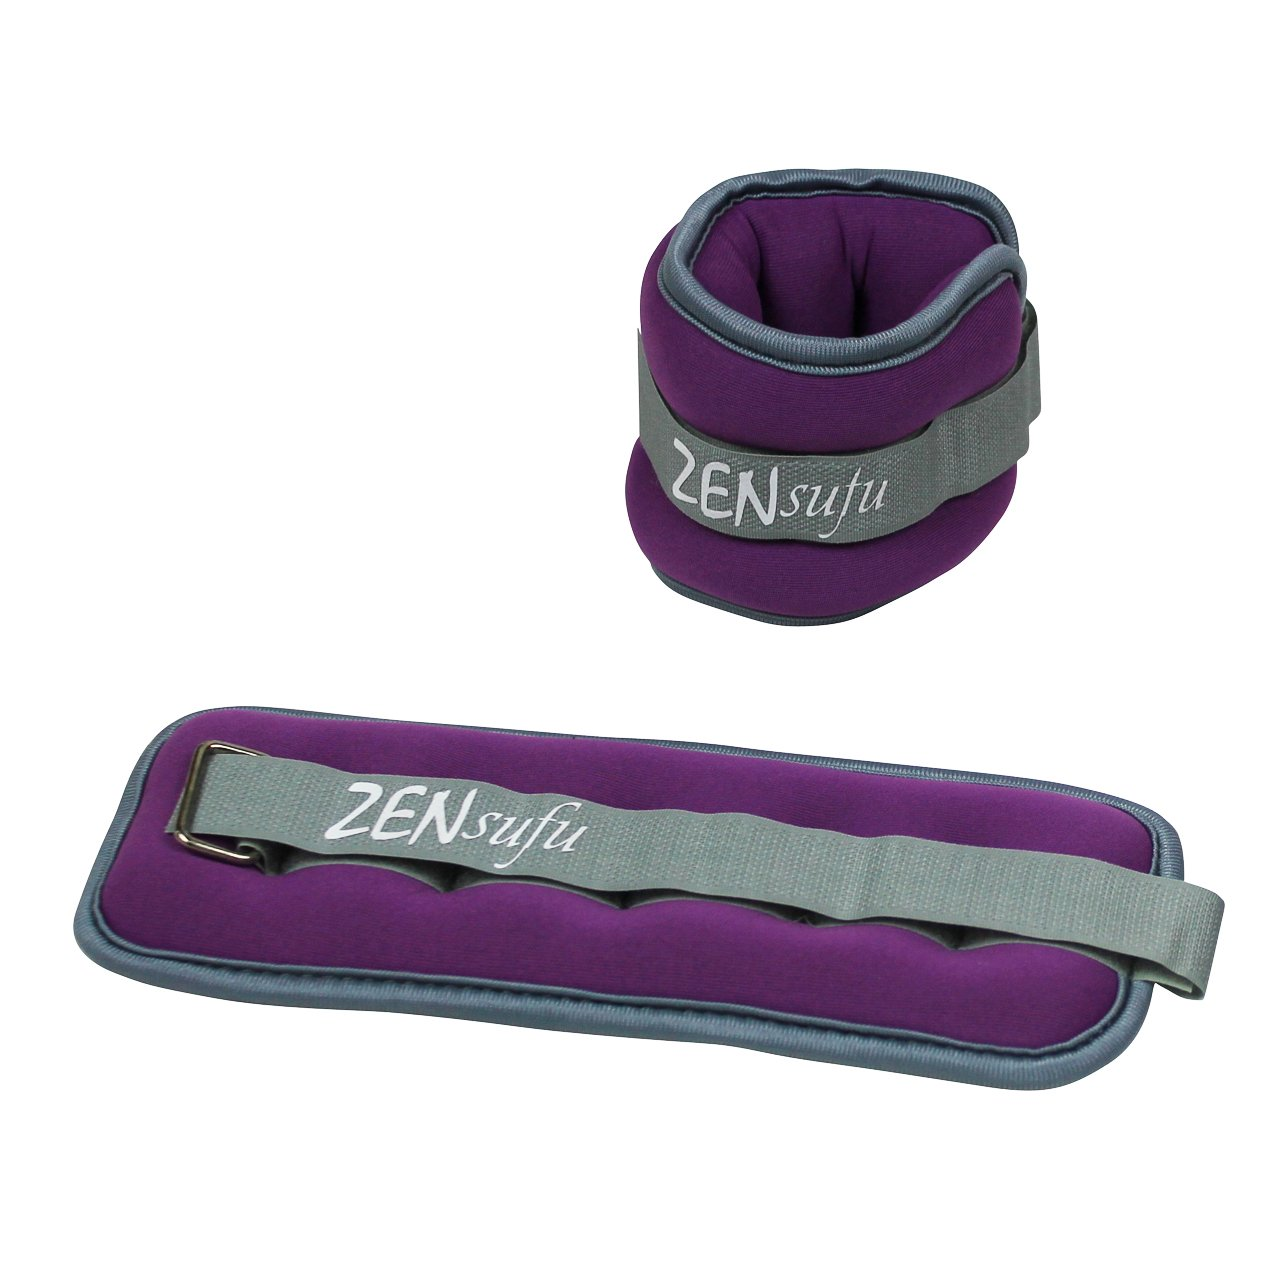 Zensufu Ankle or Wrist Weights Pair Set with Strap, Sold in Pairs of 1 to 5 lbs (2 to 10 lbs per Set)